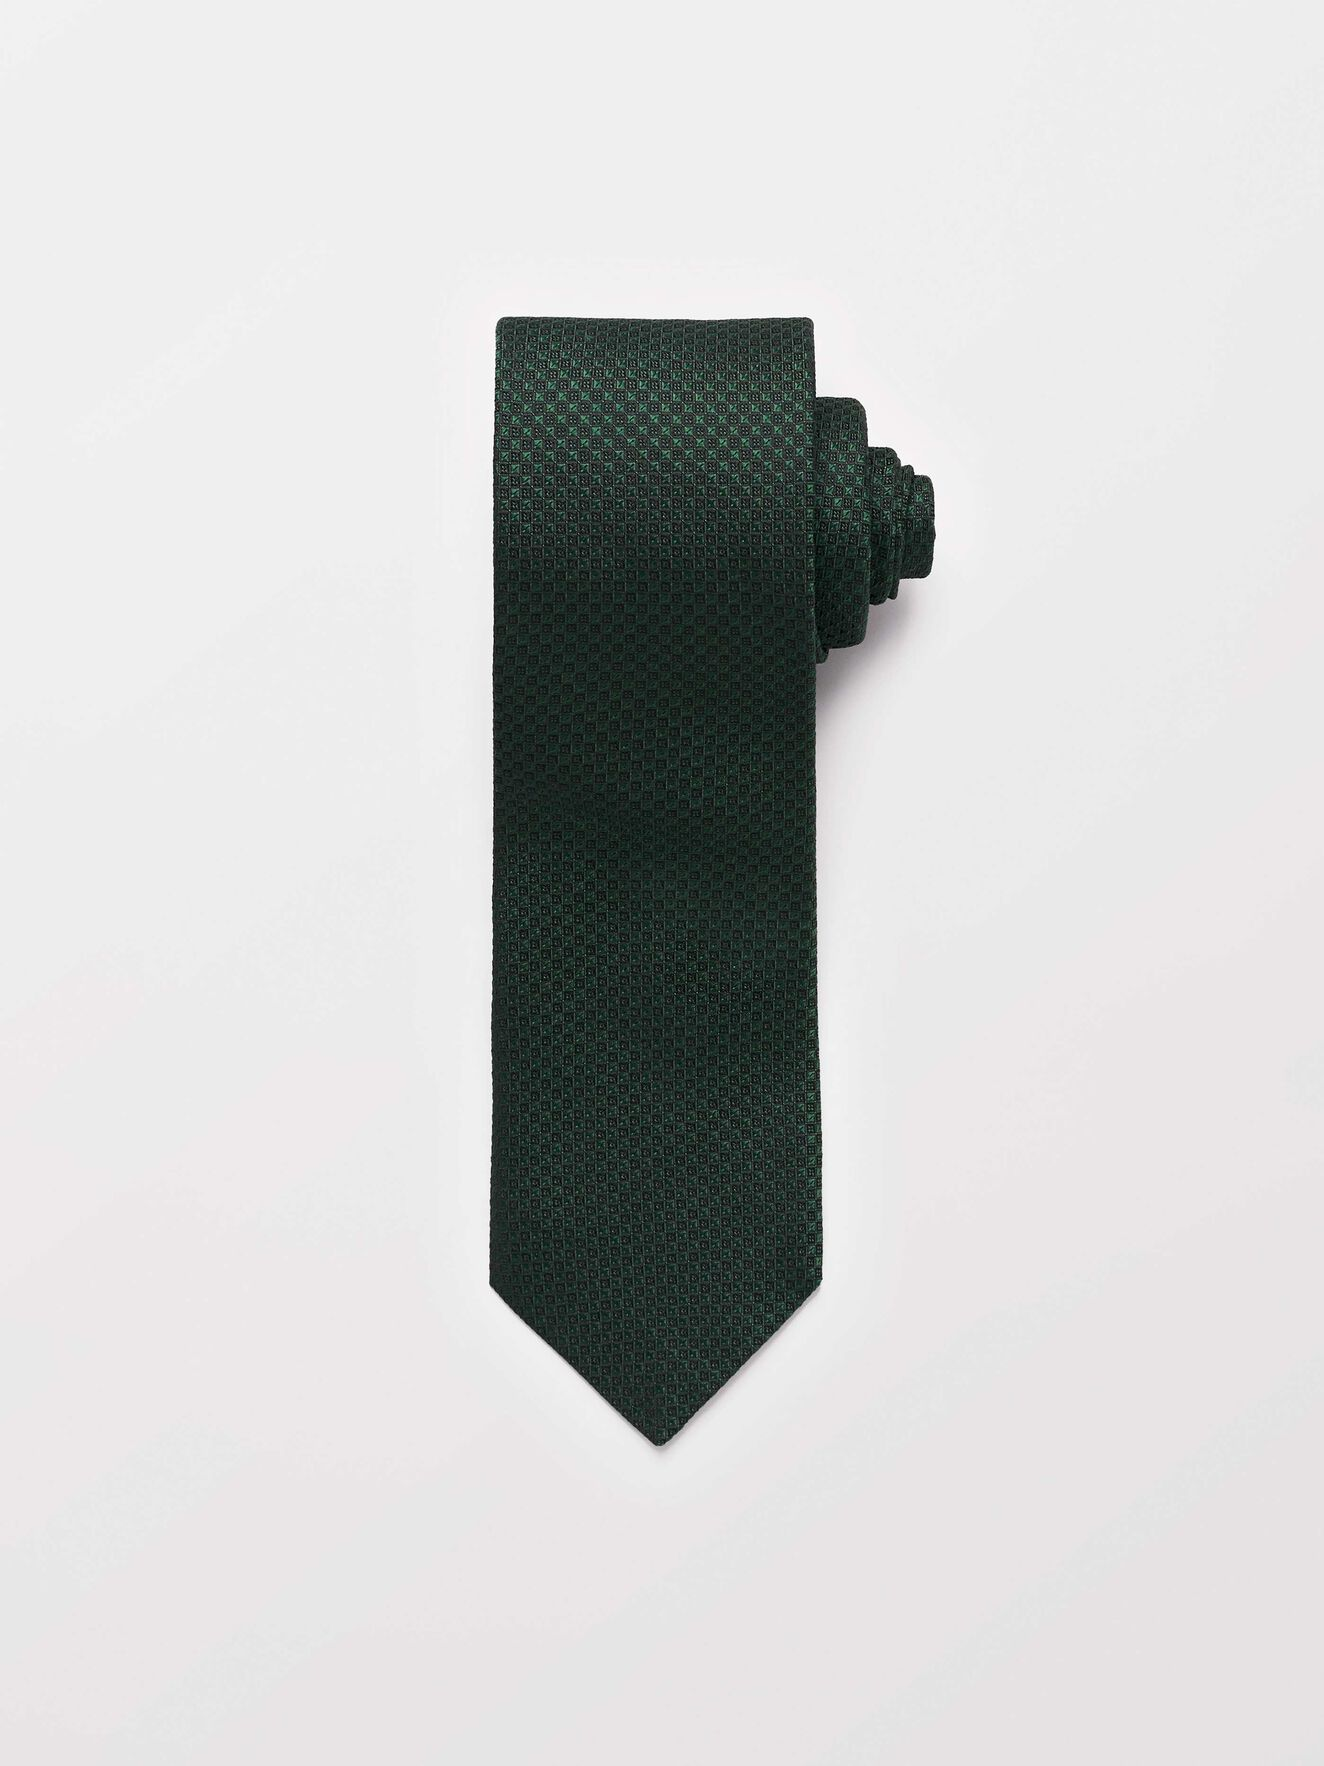 Them Tie in Vibrant Green from Tiger of Sweden